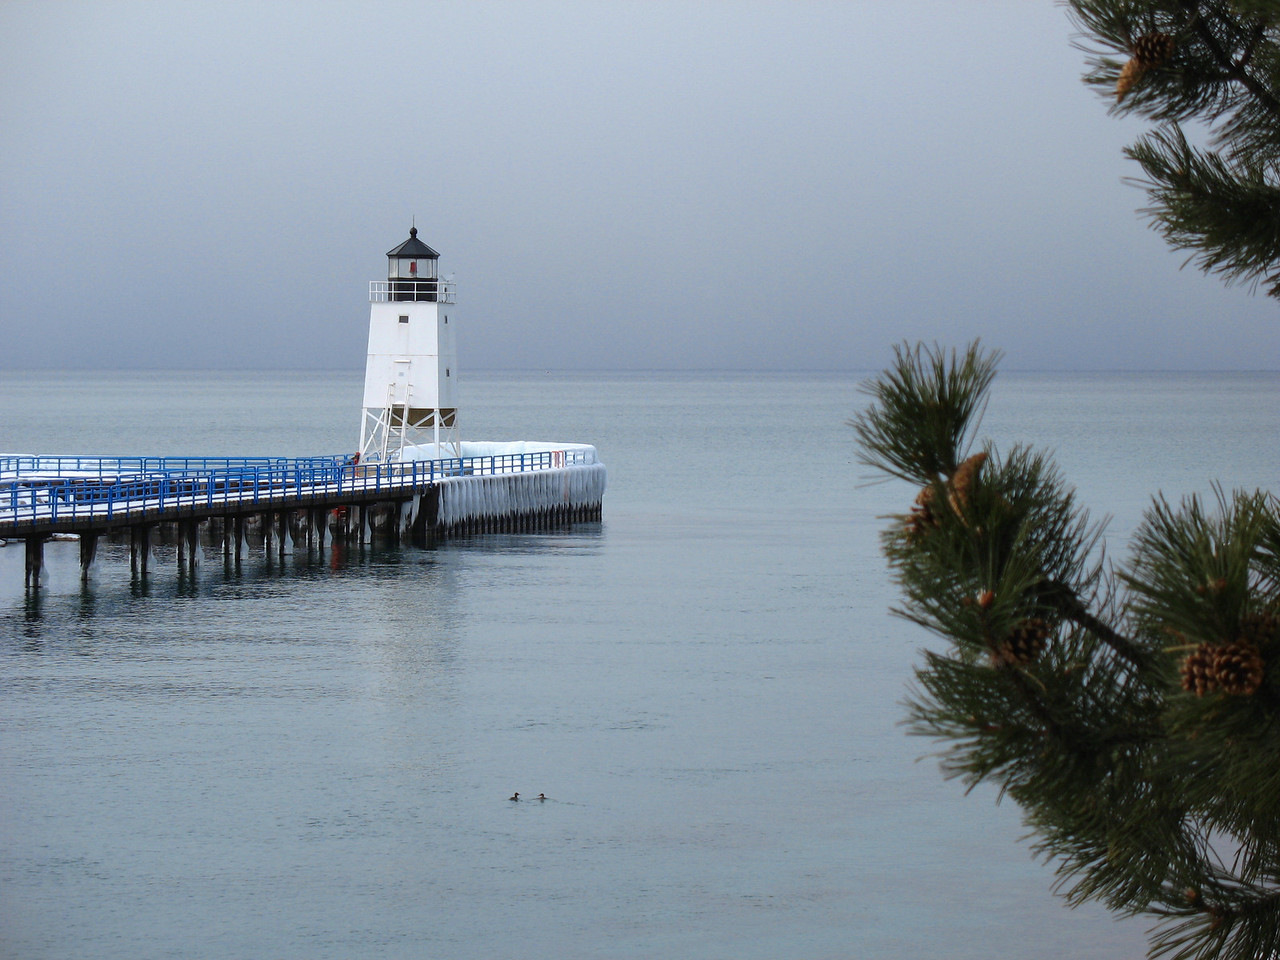 Charlevoix Pierhead Lighthouse